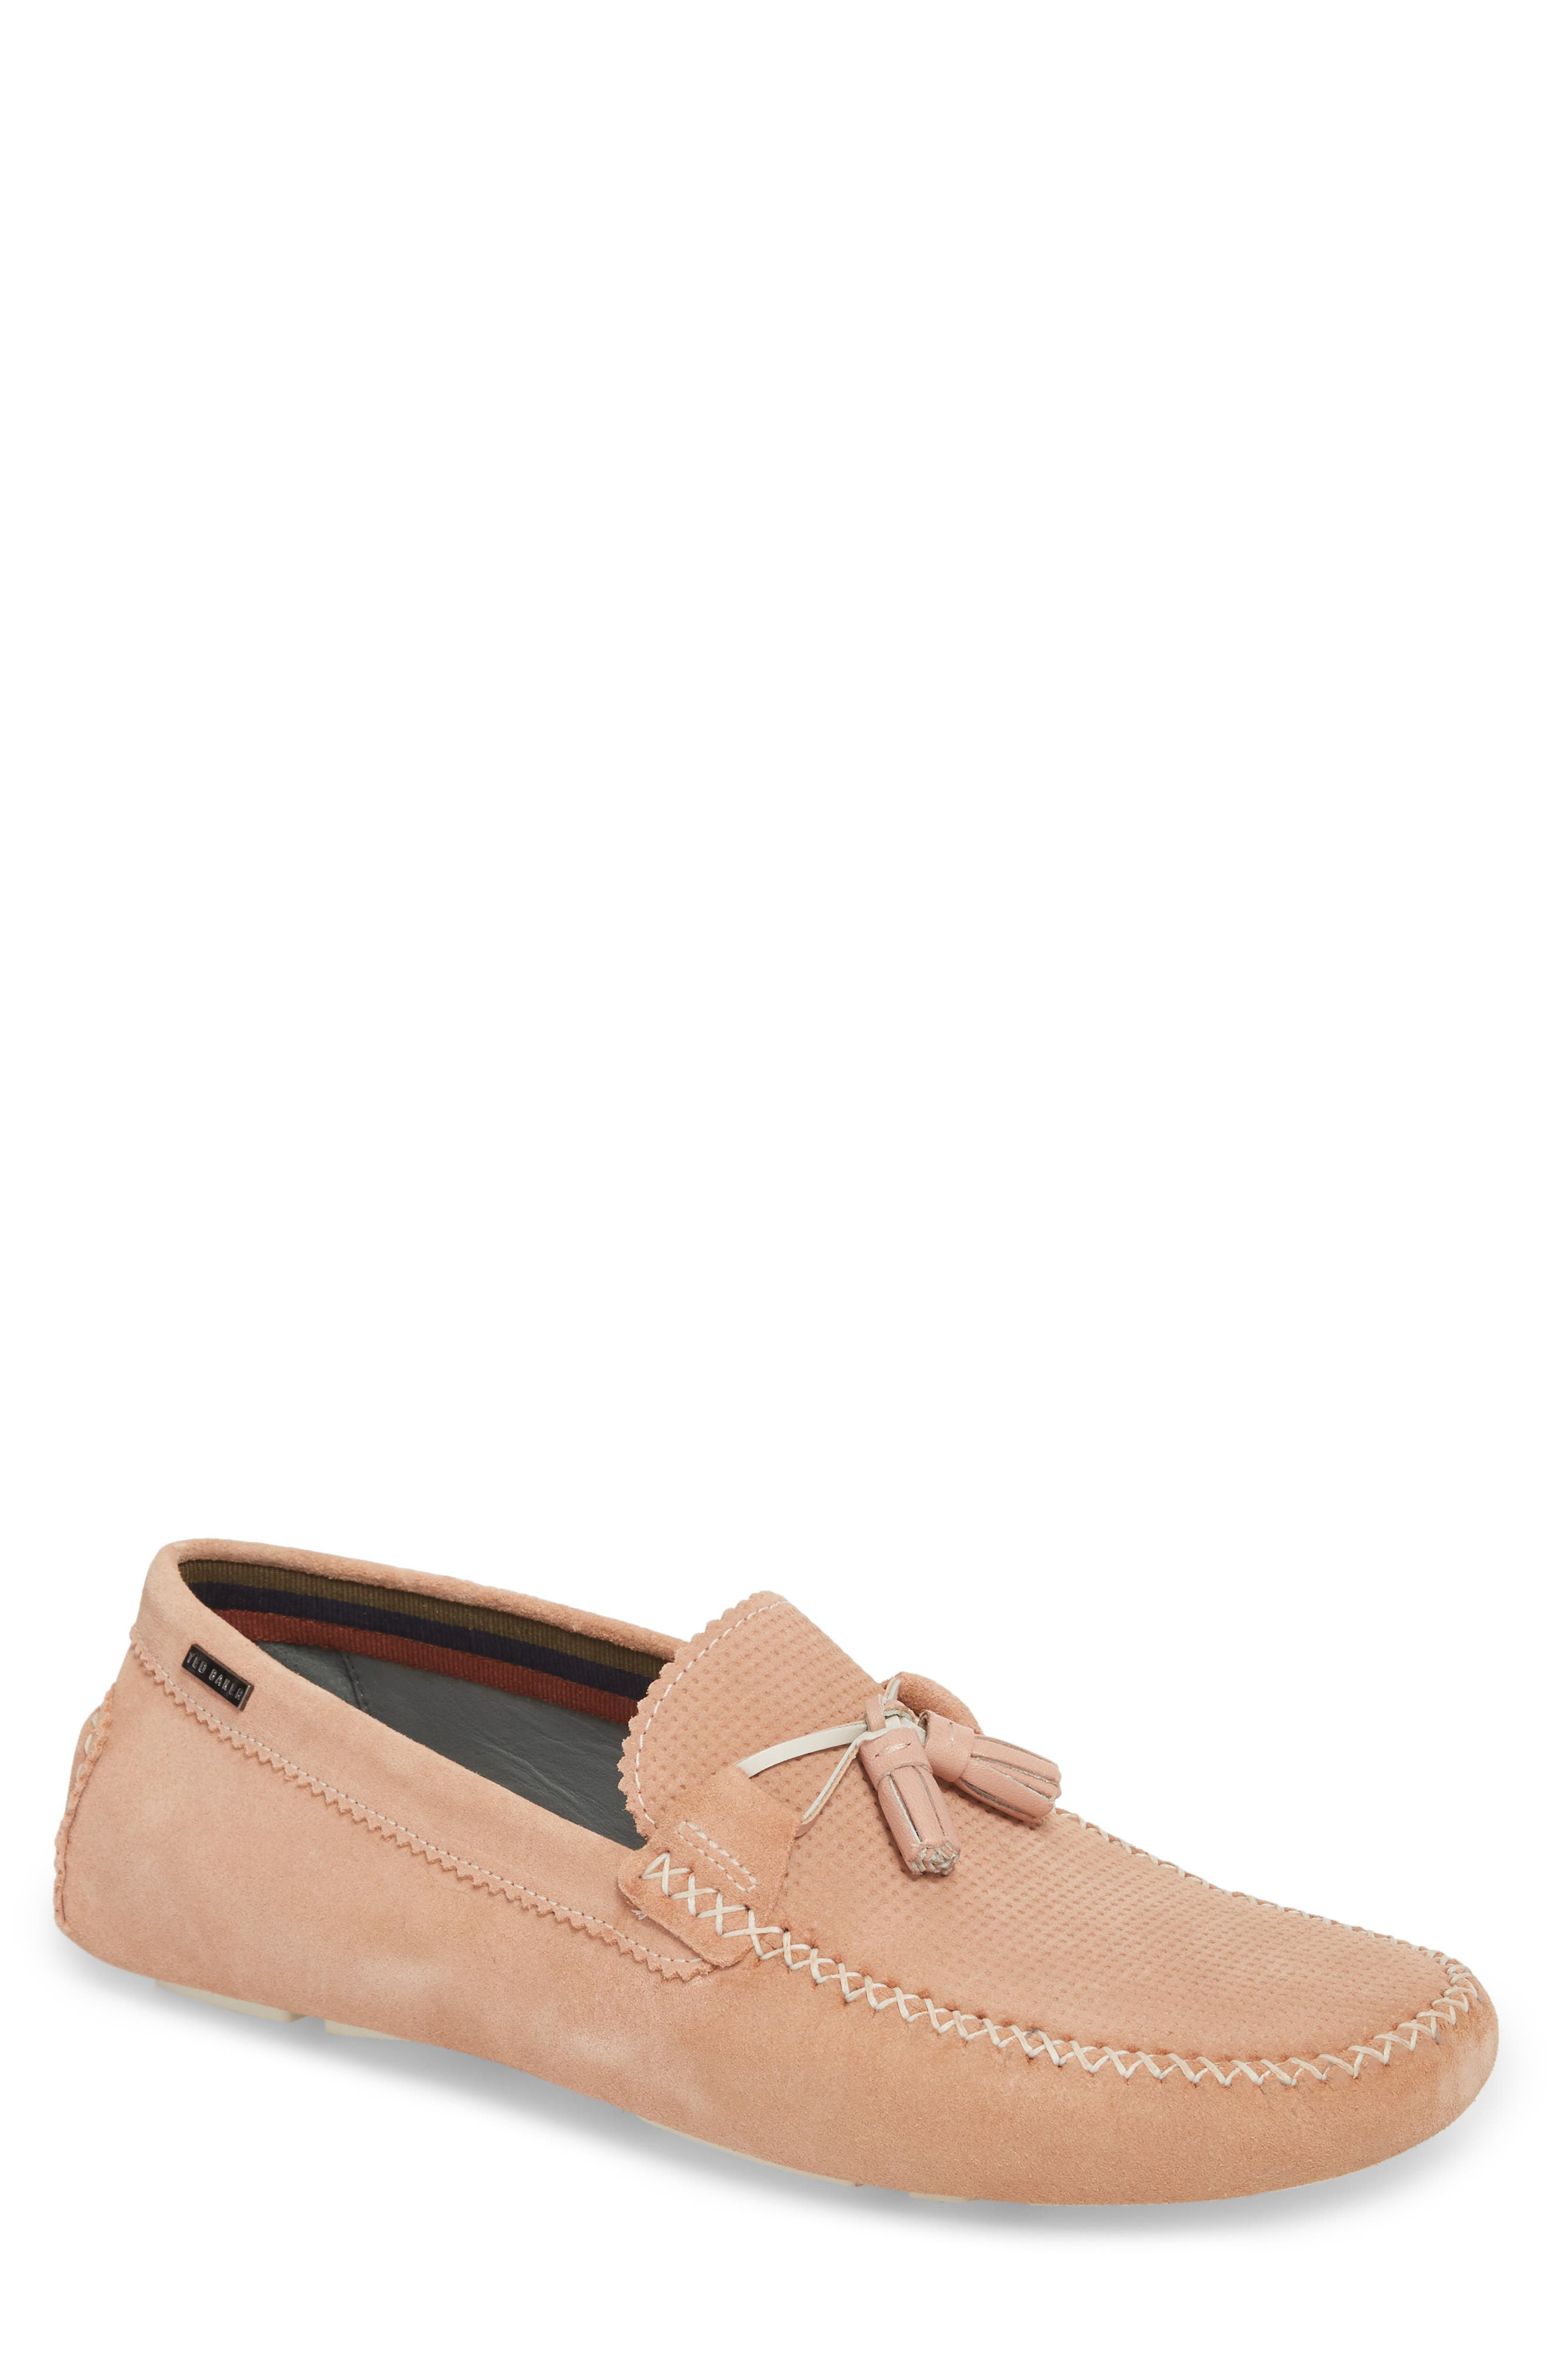 Erbonn Tasseled Driving Moccasin,                             Main thumbnail 1, color,                             Light Pink Suede